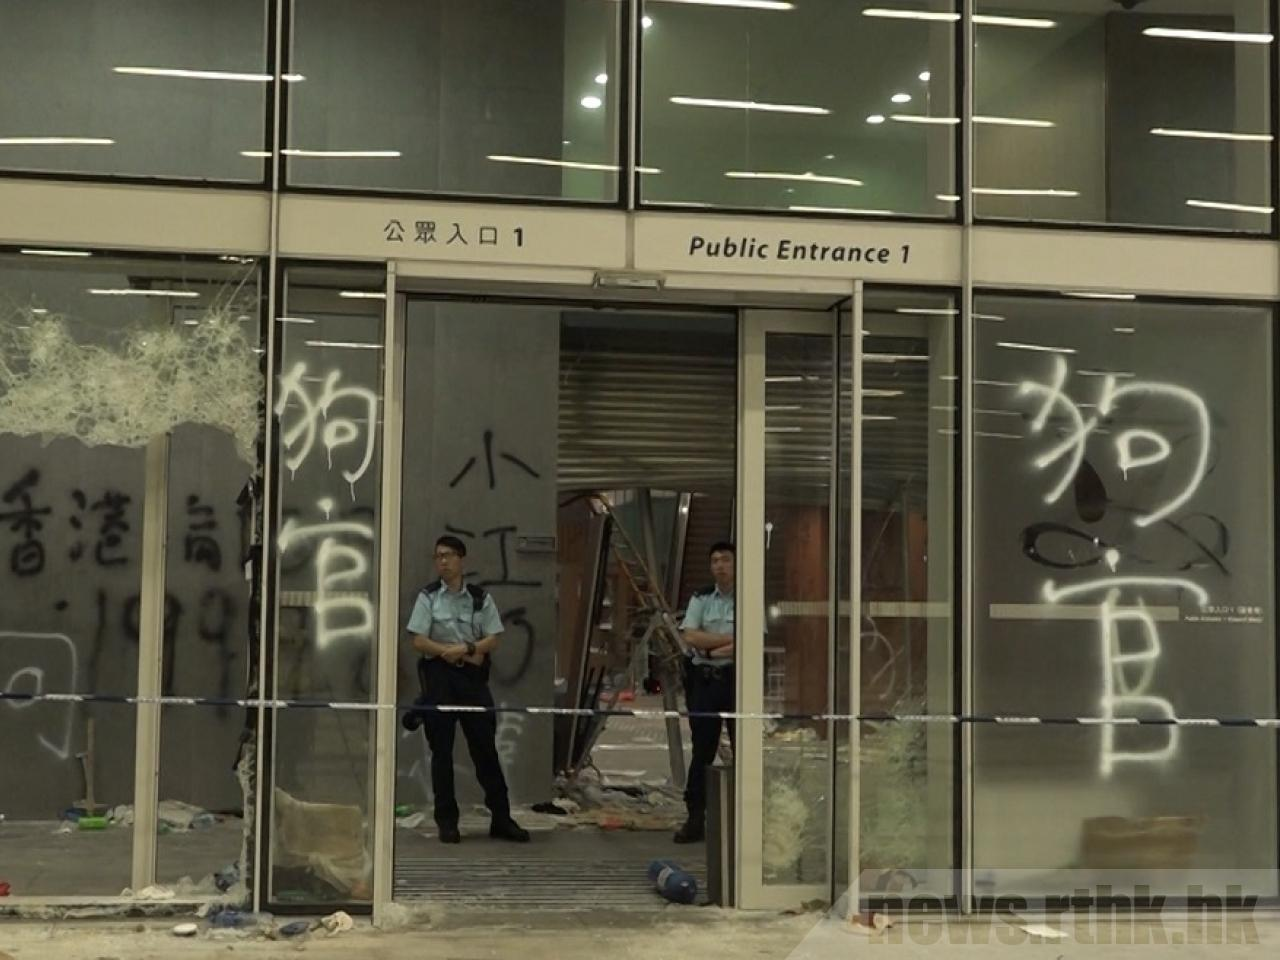 Hong Kong Protesters Take LegCo Building, Police Retake It. Entire Scene Planned In Video Released 10 Days Earlier